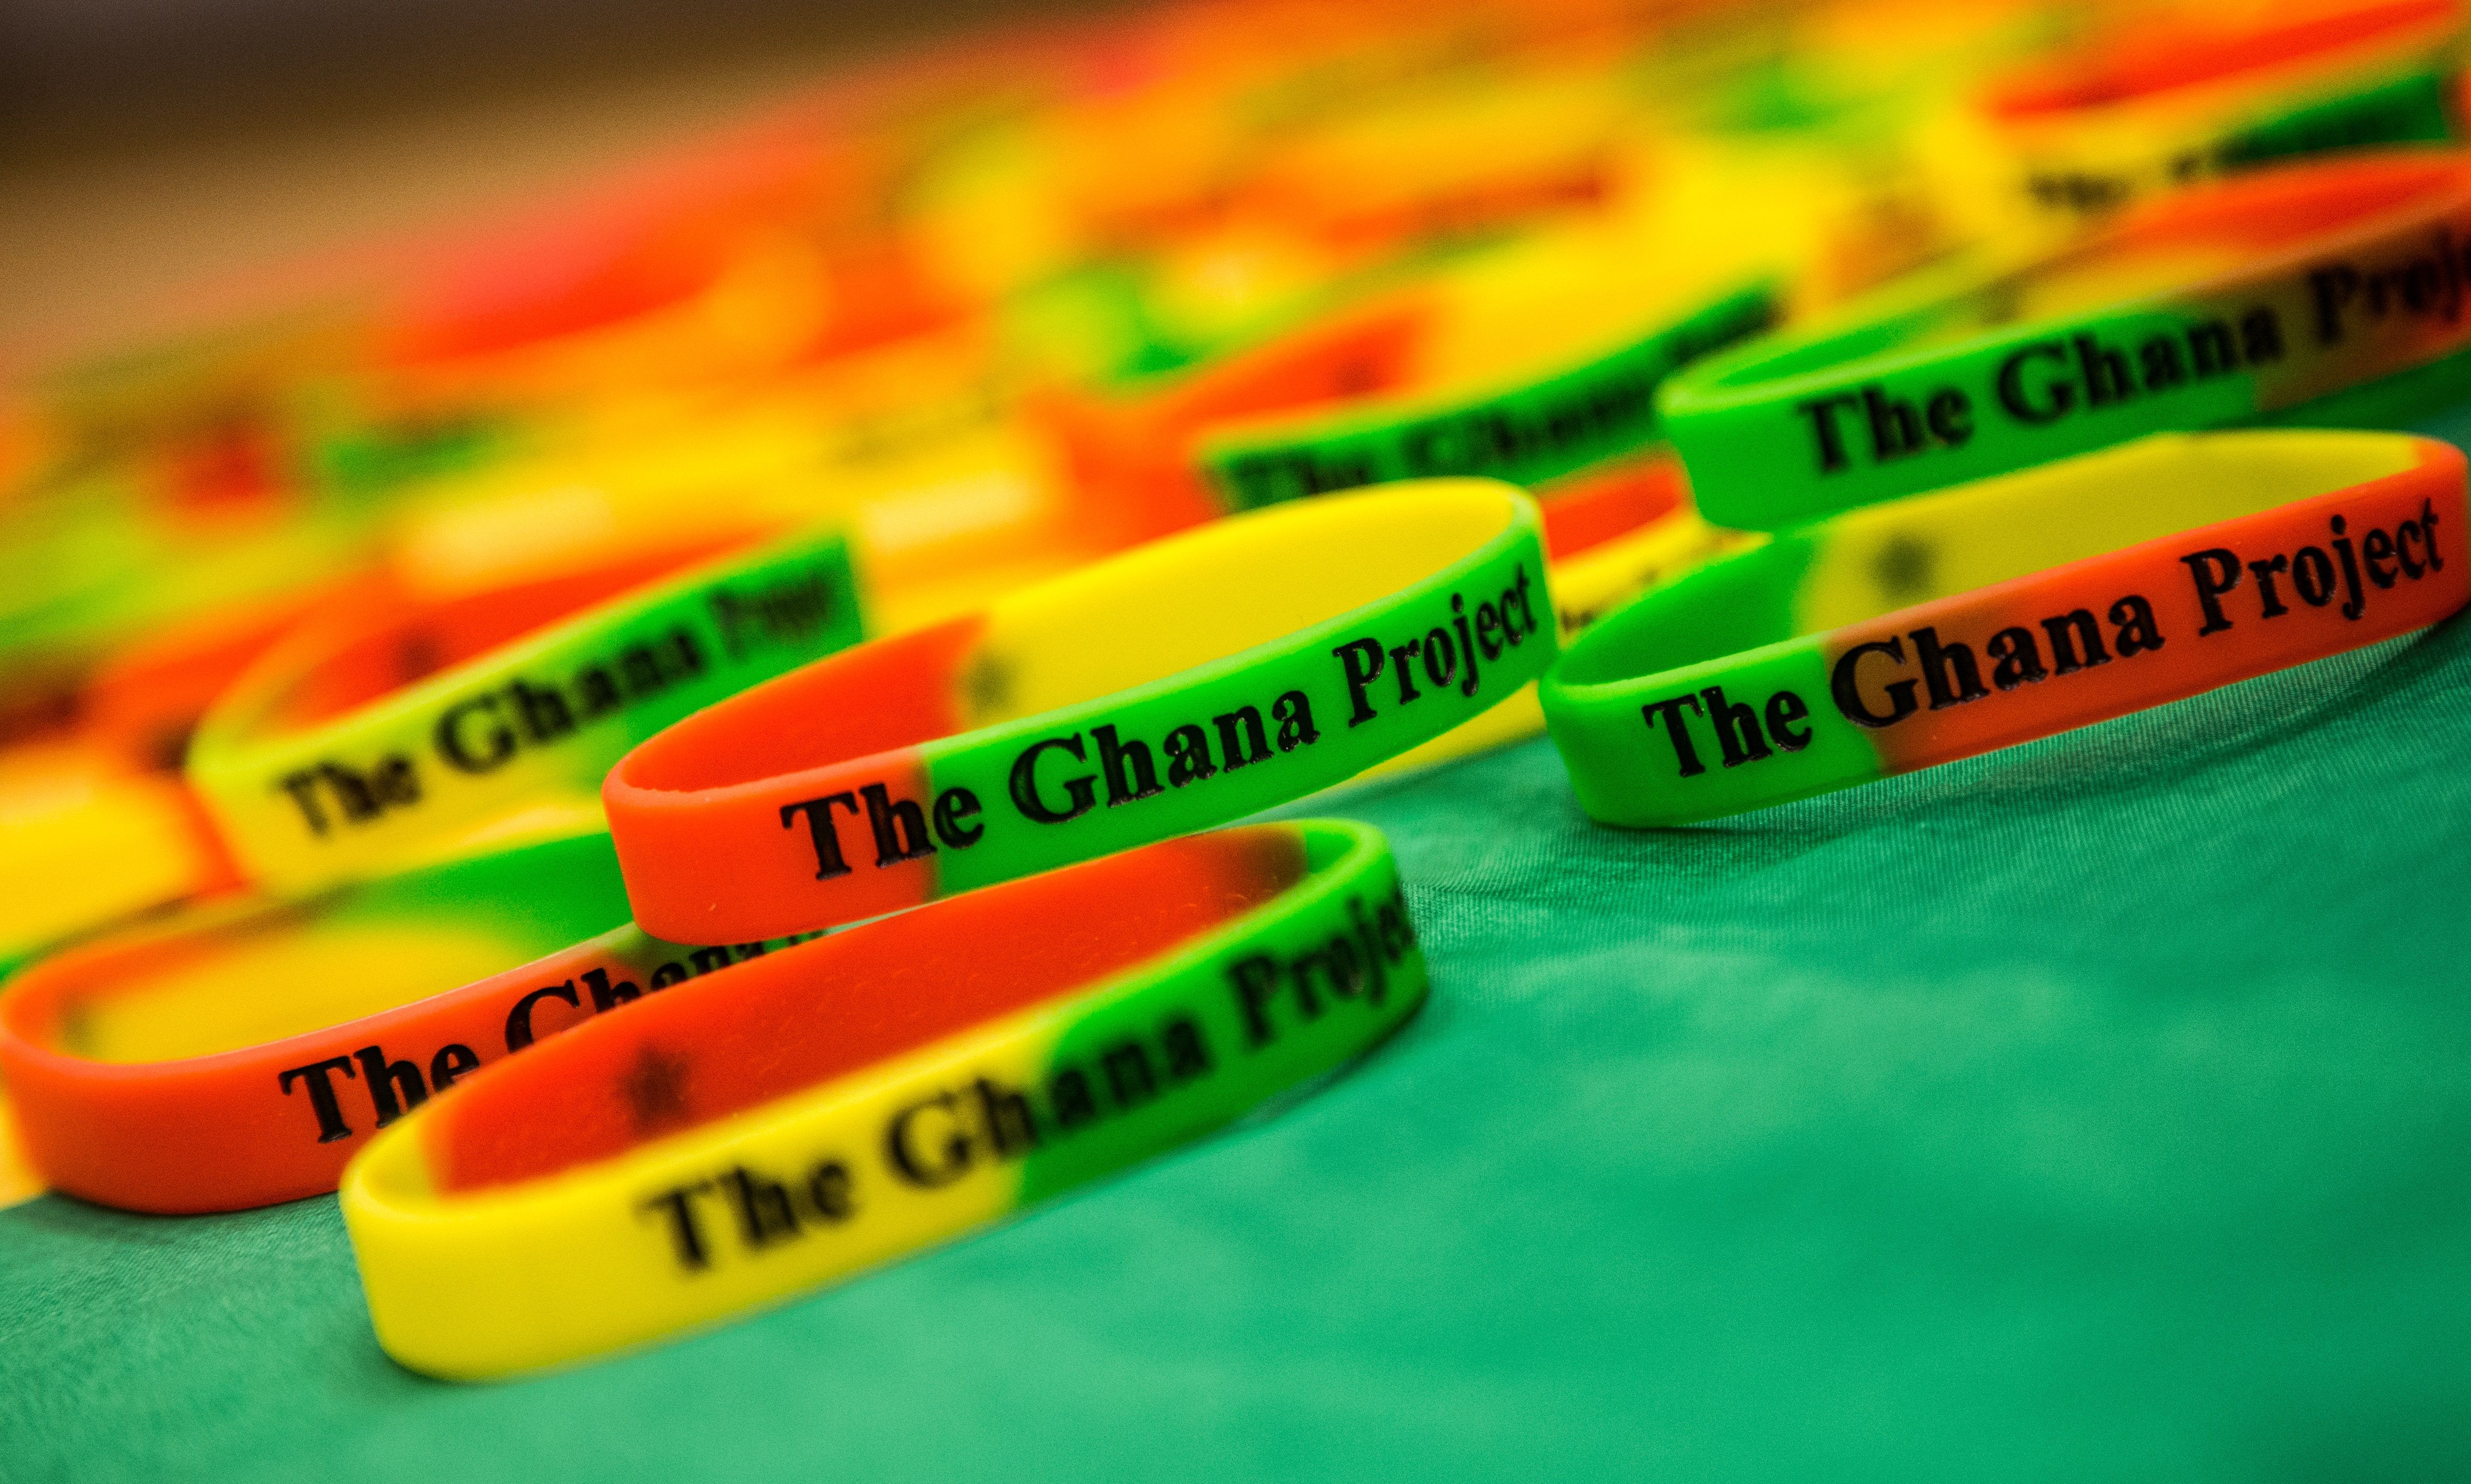 Bracelets for The Ghana Project